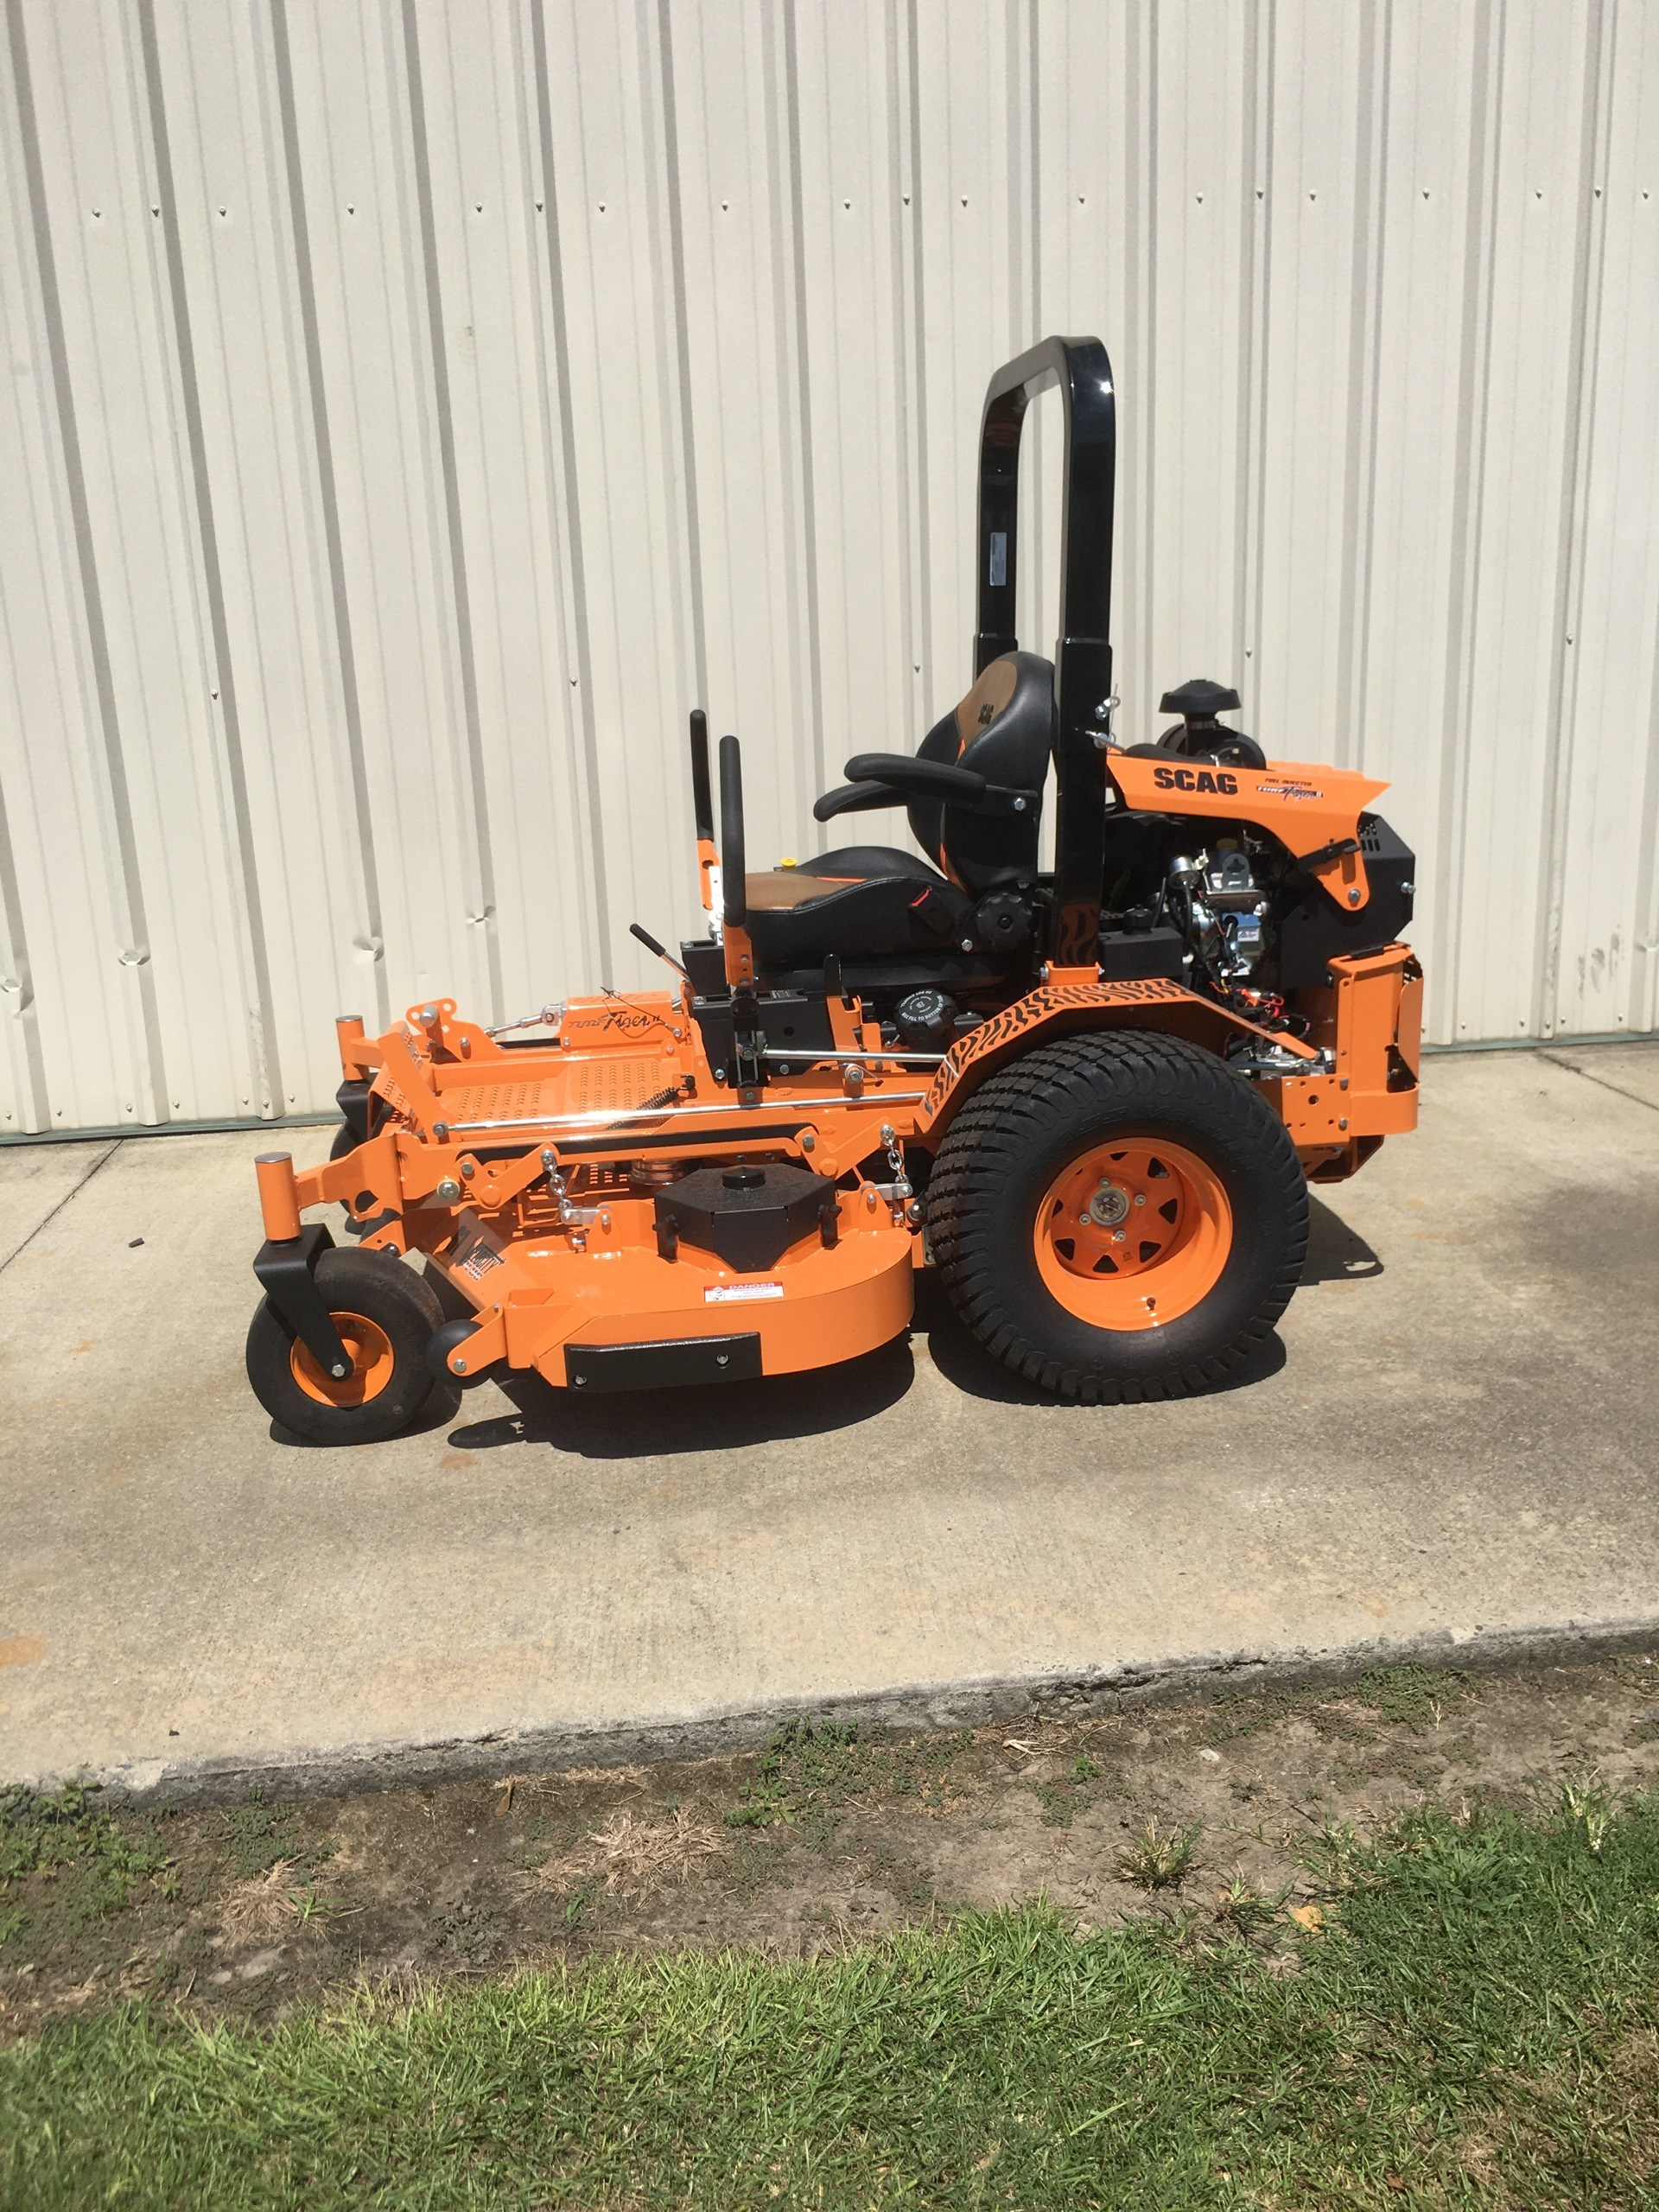 2020 SCAG Power Equipment Turf Tiger II 61 in. Briggs Vanguard EFI 37 hp in Tifton, Georgia - Photo 2